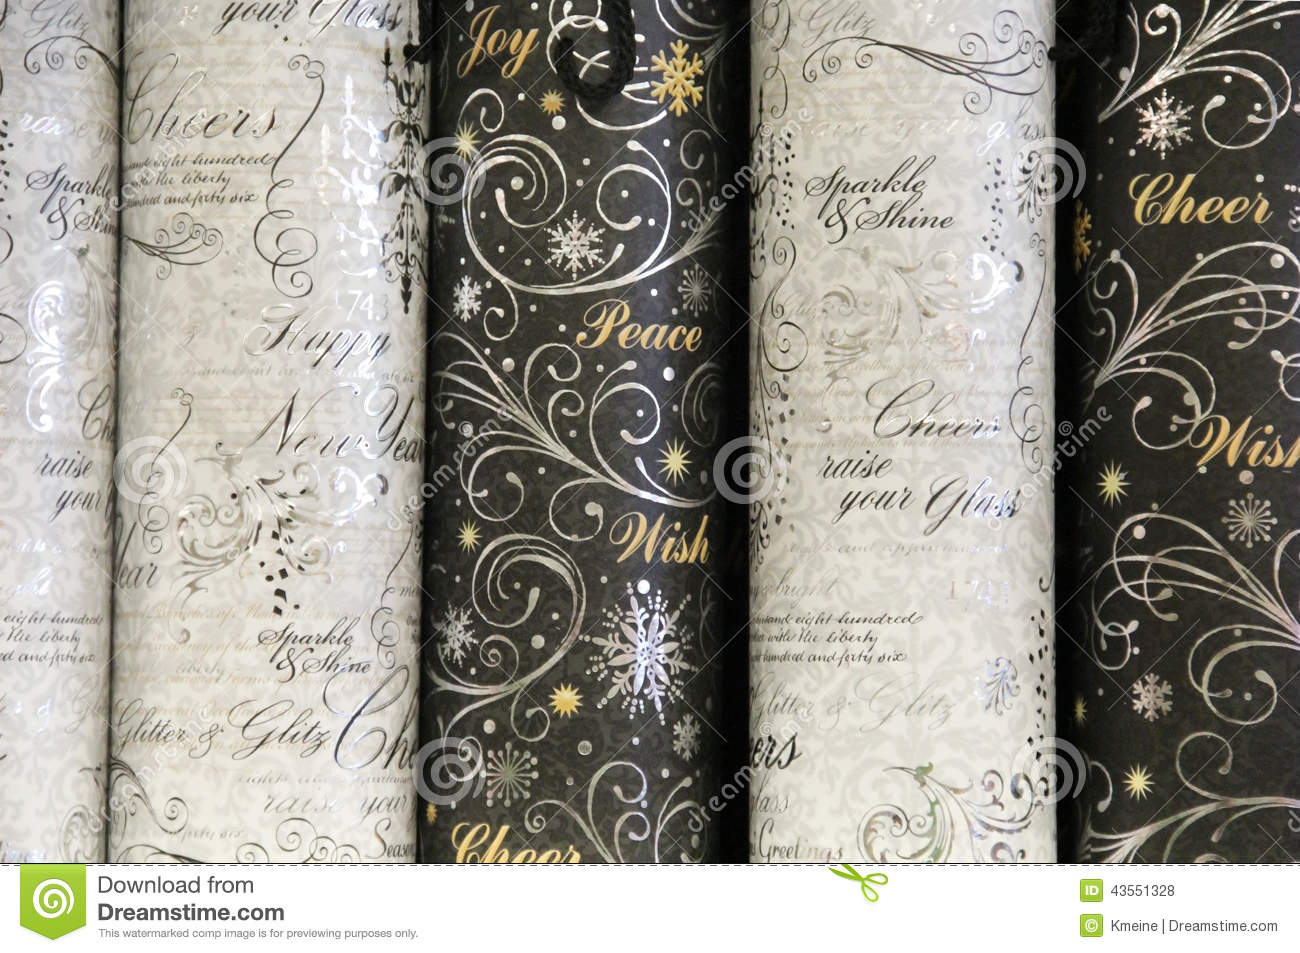 holiday cheer wrapping paper rolls stock photo image 43551328. Black Bedroom Furniture Sets. Home Design Ideas